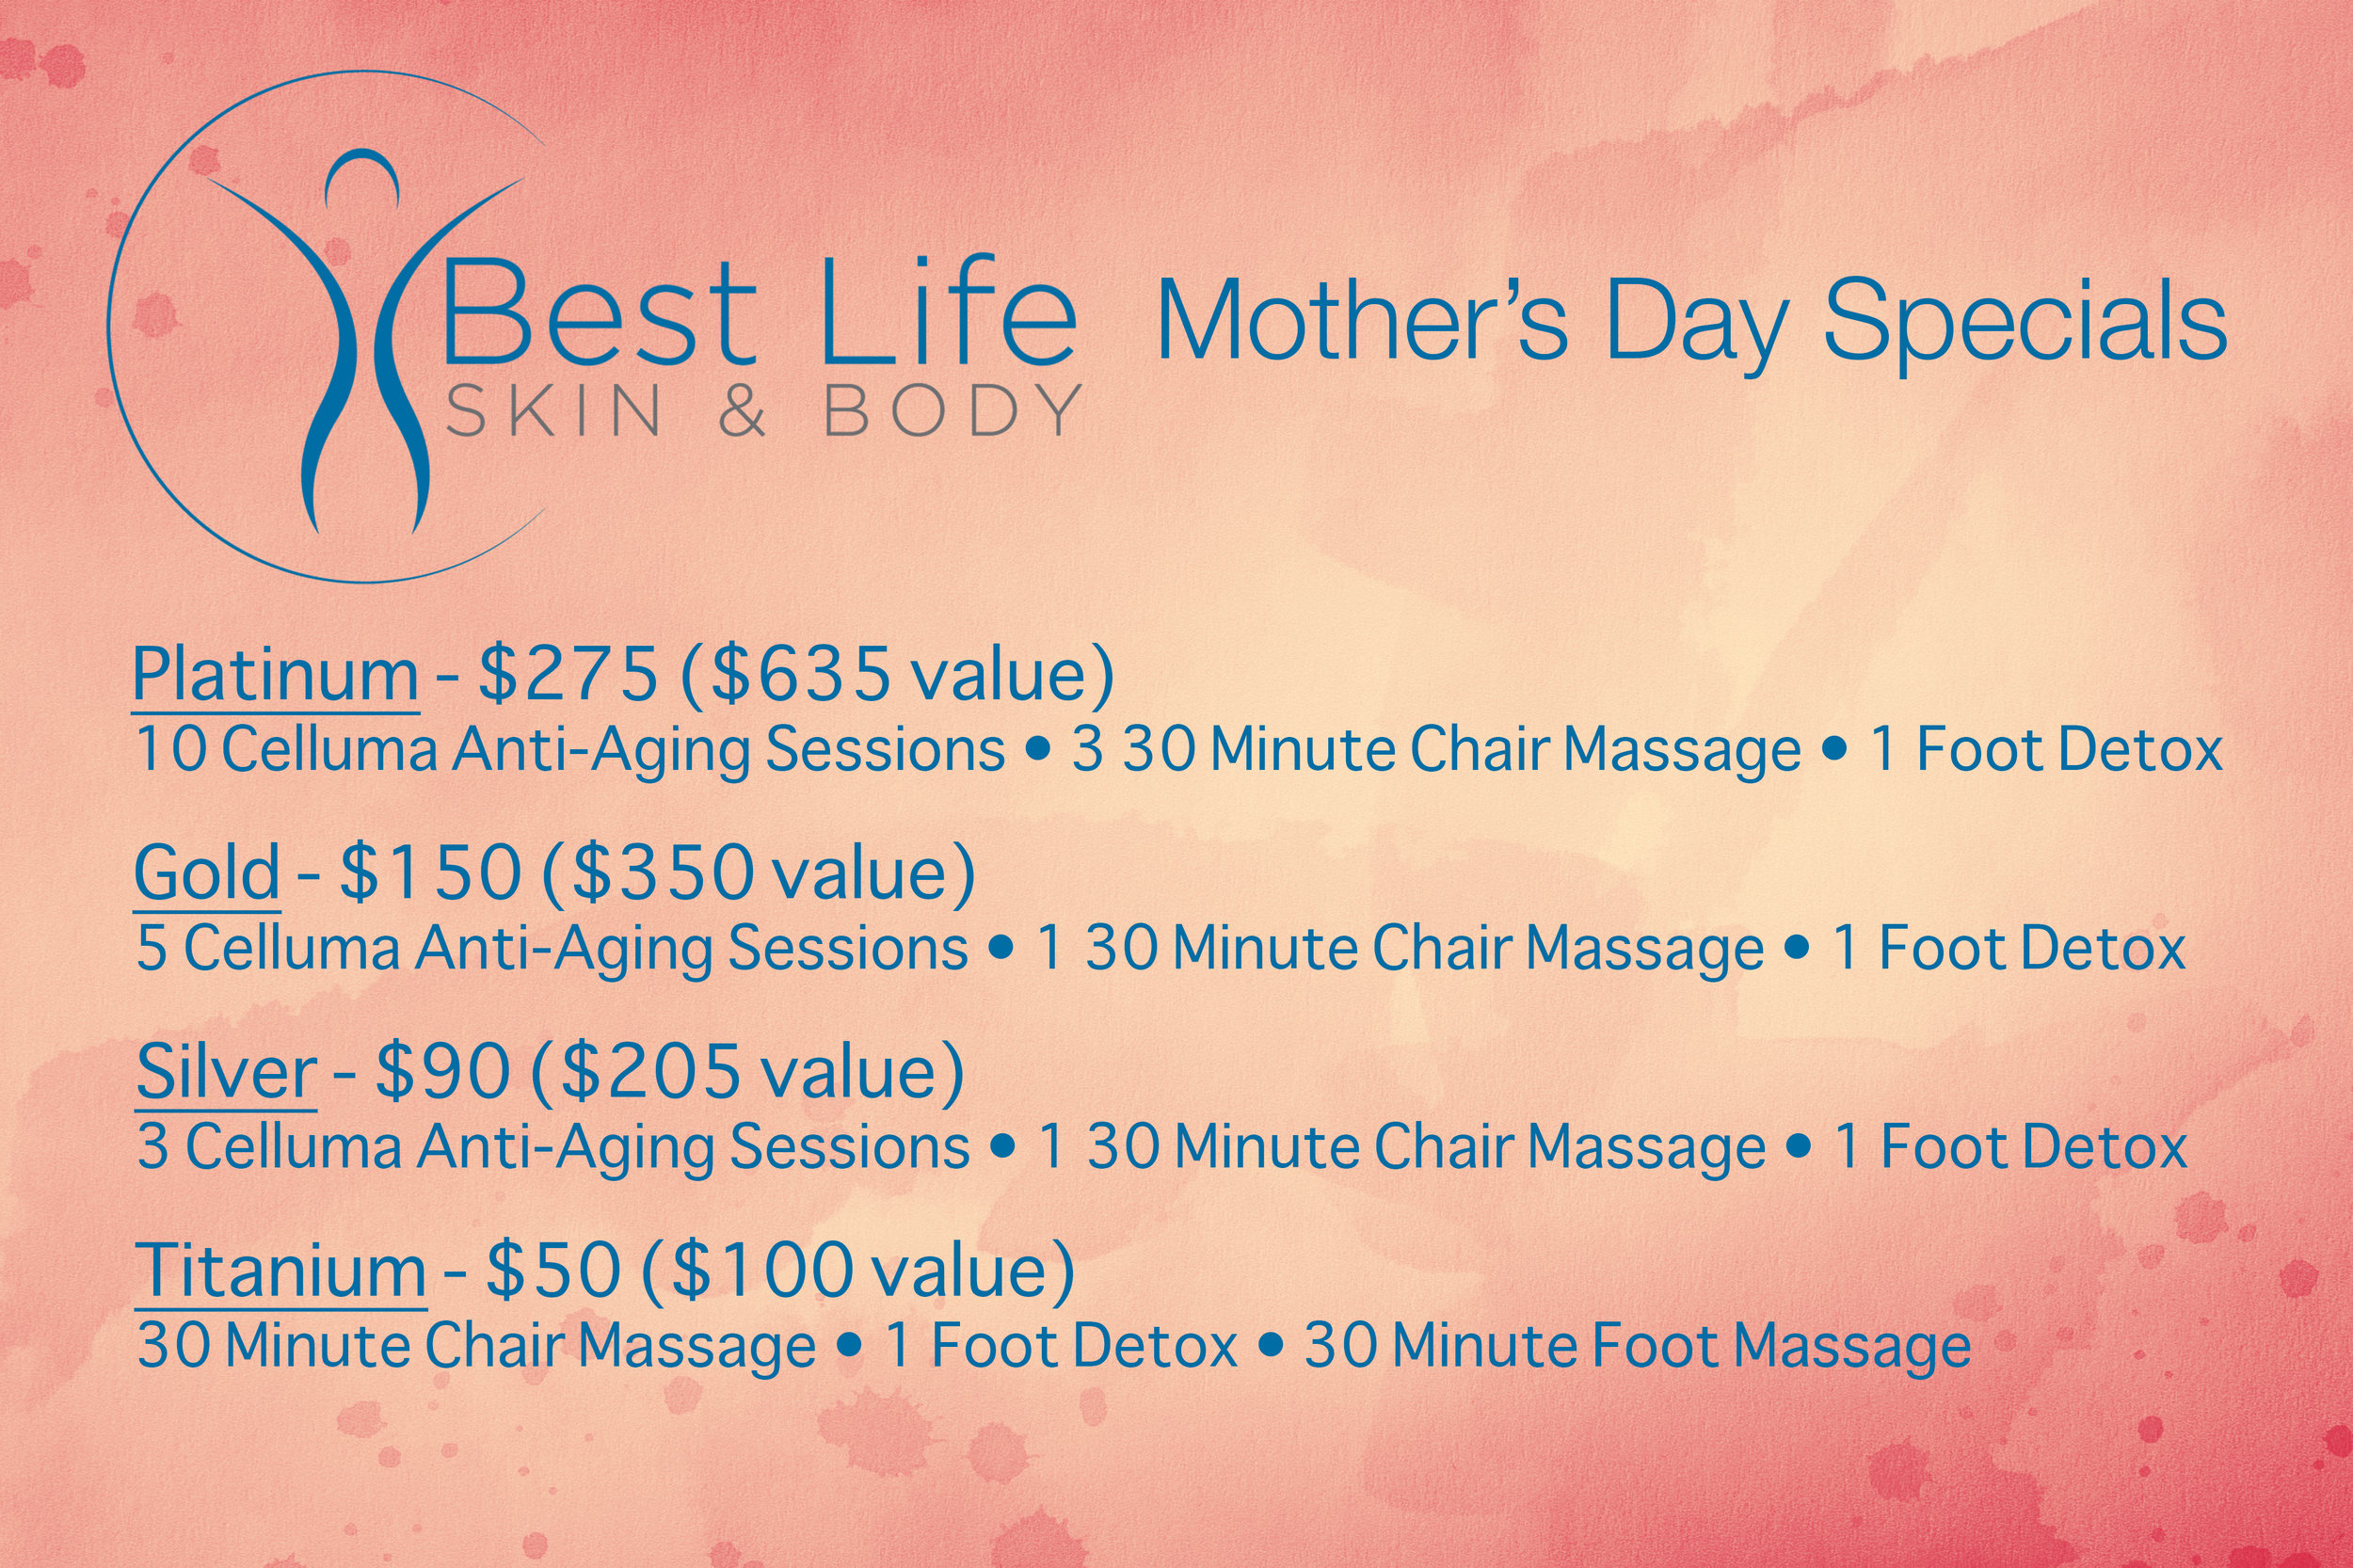 Call us 614-300-0411 to purchase a Mother's Day Package today.